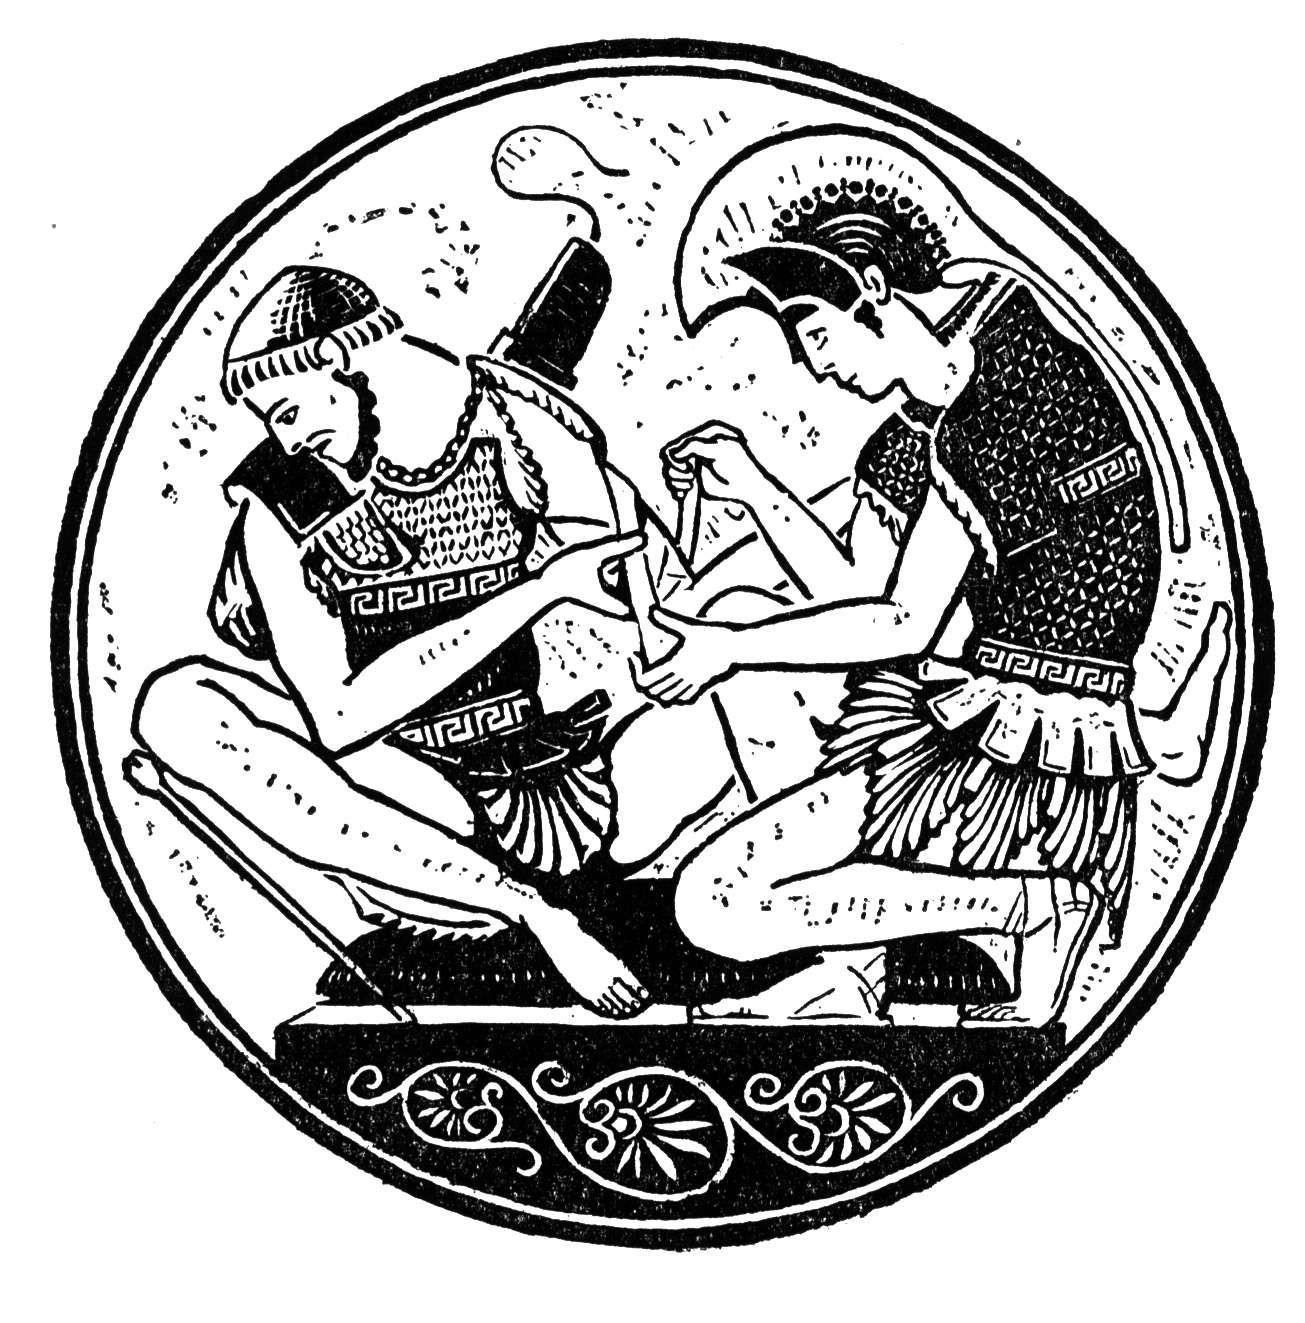 learn about achilles through pictures